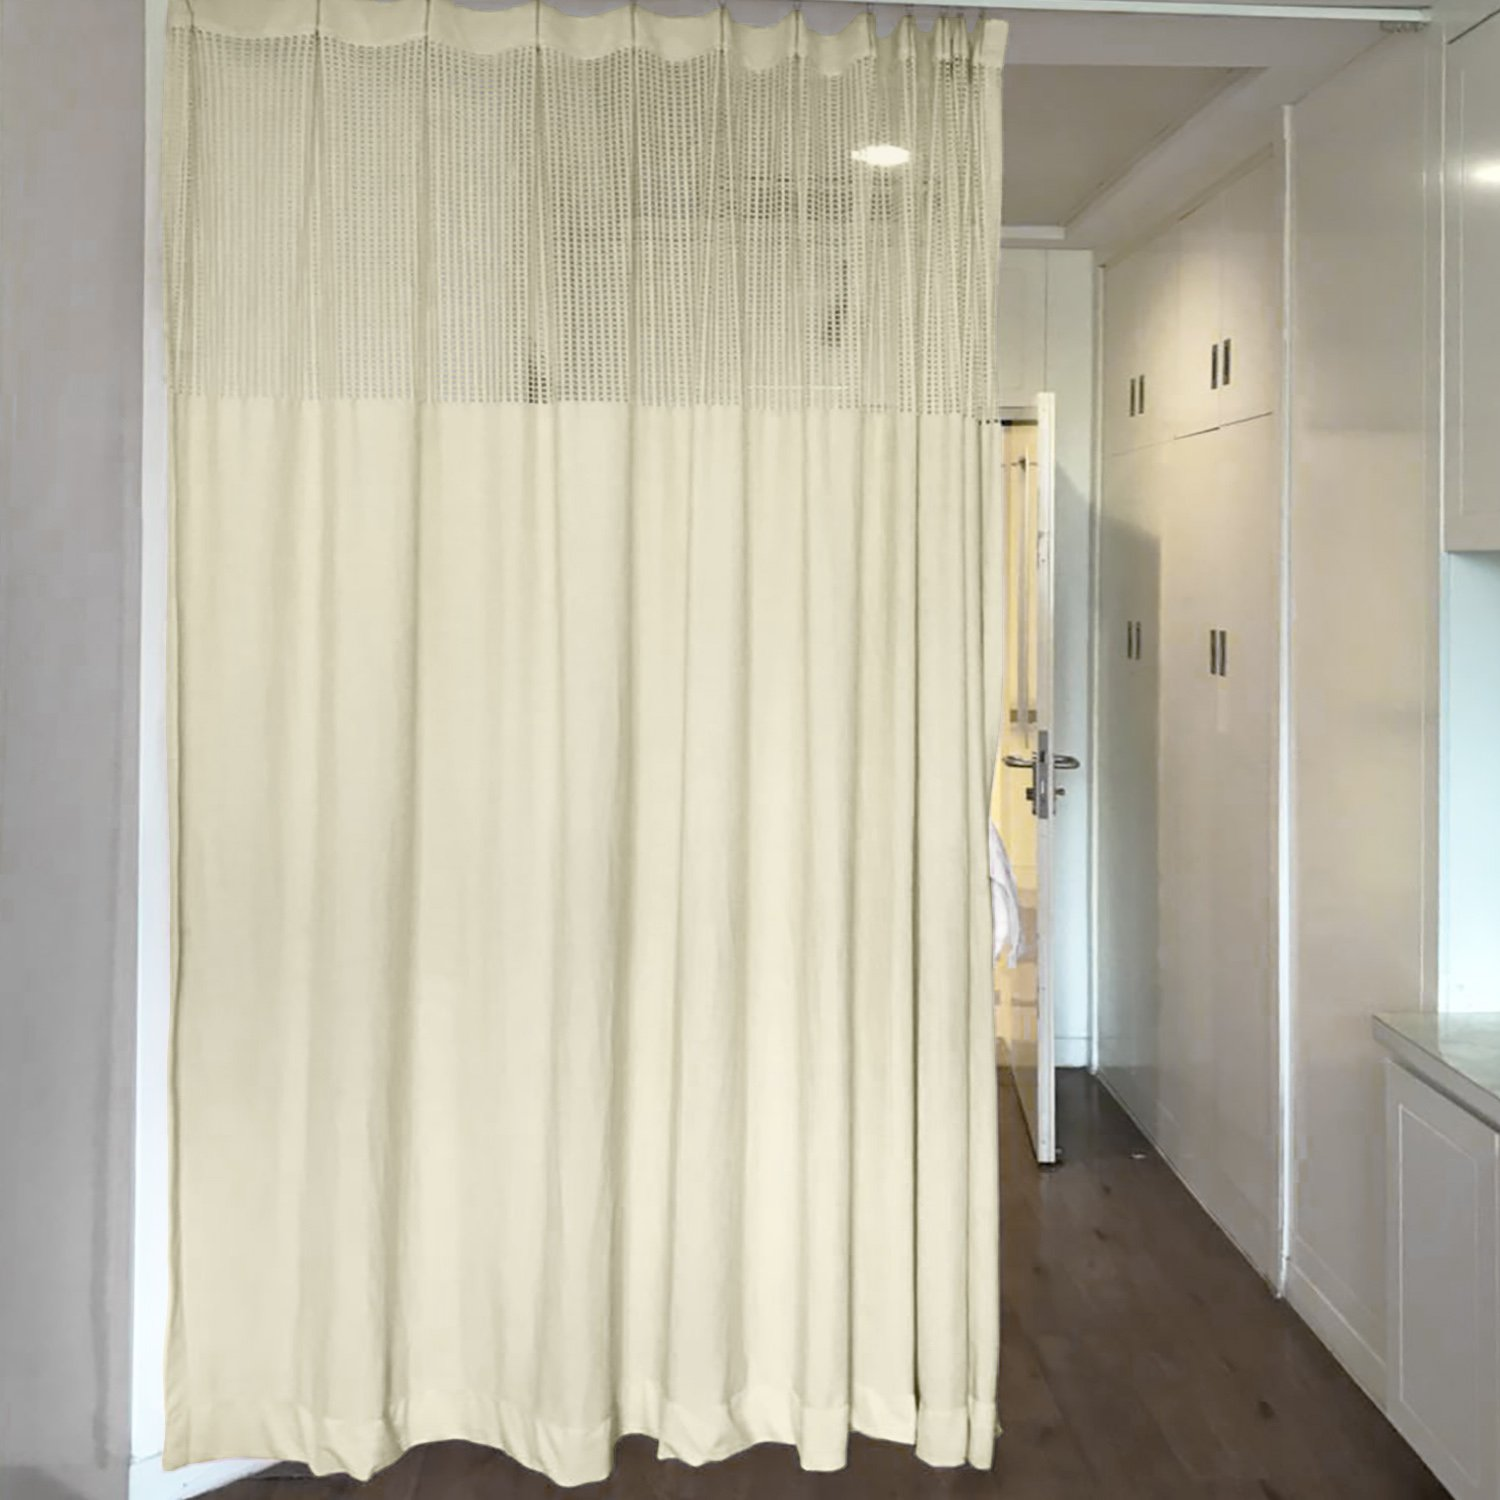 10ft Wide x 8ft Tall Pinch Pleated for Hospital Medical Clinic Spa Lab Cubicle Curtain Divider Privacy Screen, Beige Ivory, (Track Hardware Not Included)